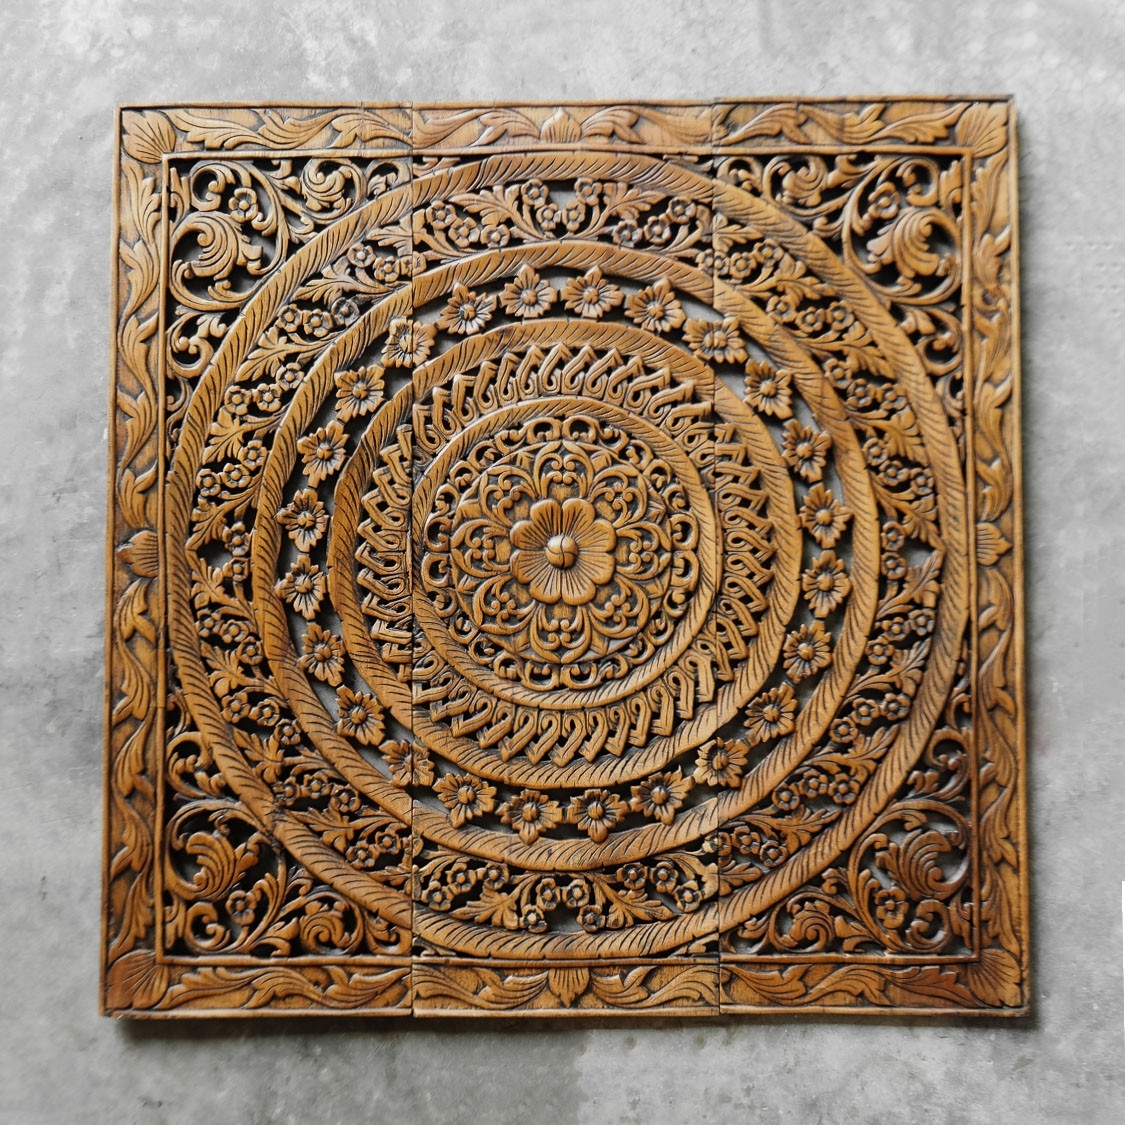 Carved Wall Decor Elegant Moroccan Decent Wood Carving Wall Art Pertaining To Most Current Wood Carved Wall Art (View 11 of 20)